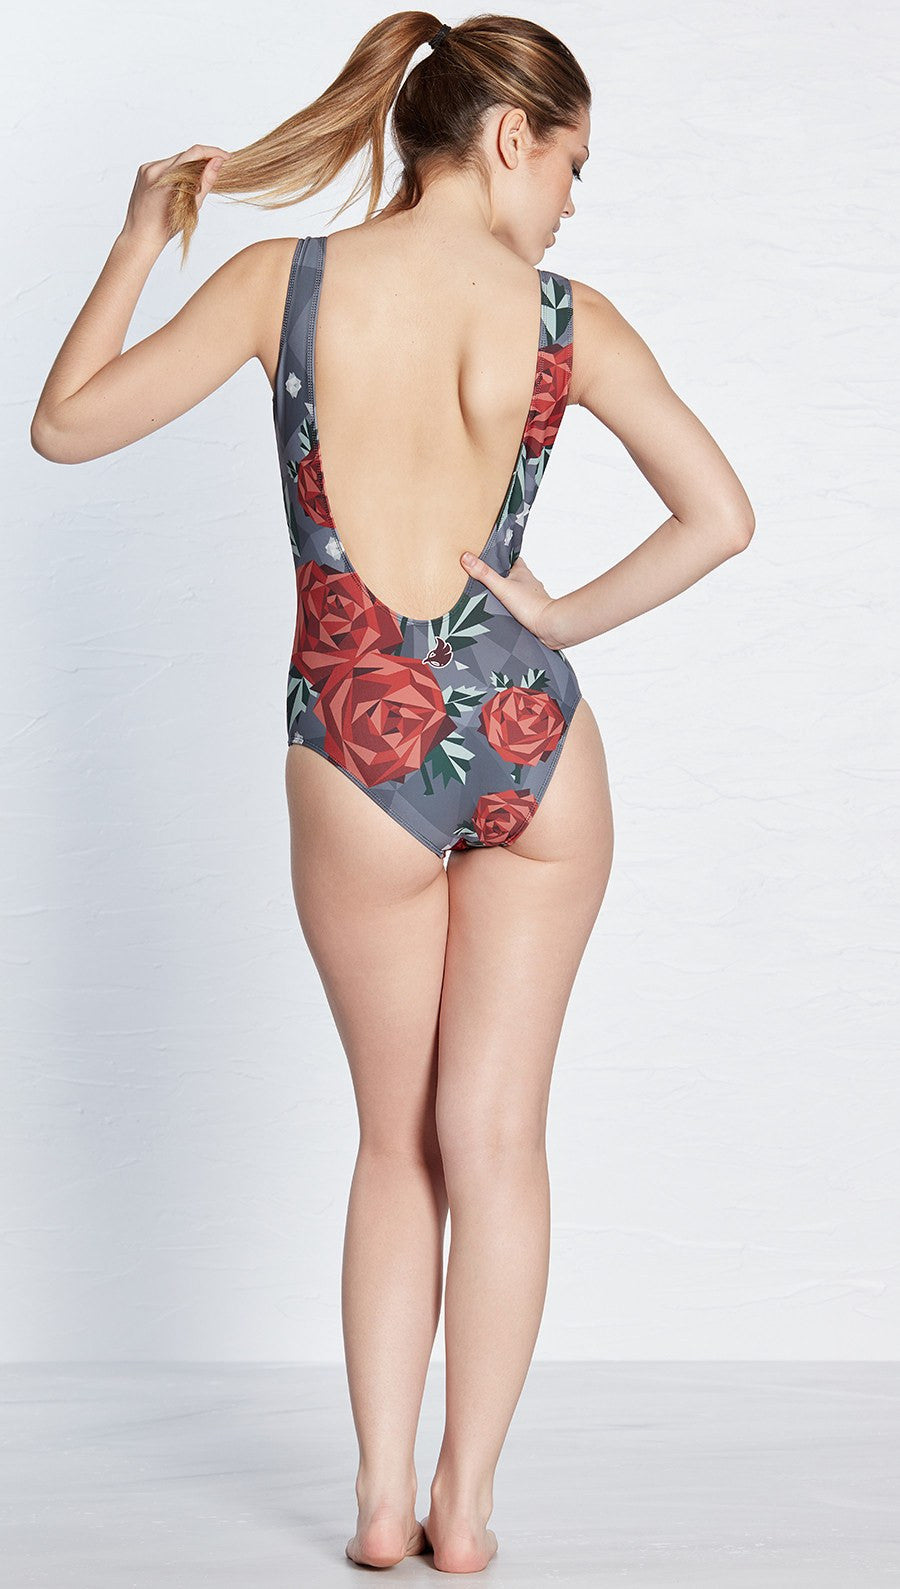 front view of geometric rose themed one piece swimsuit / leotard